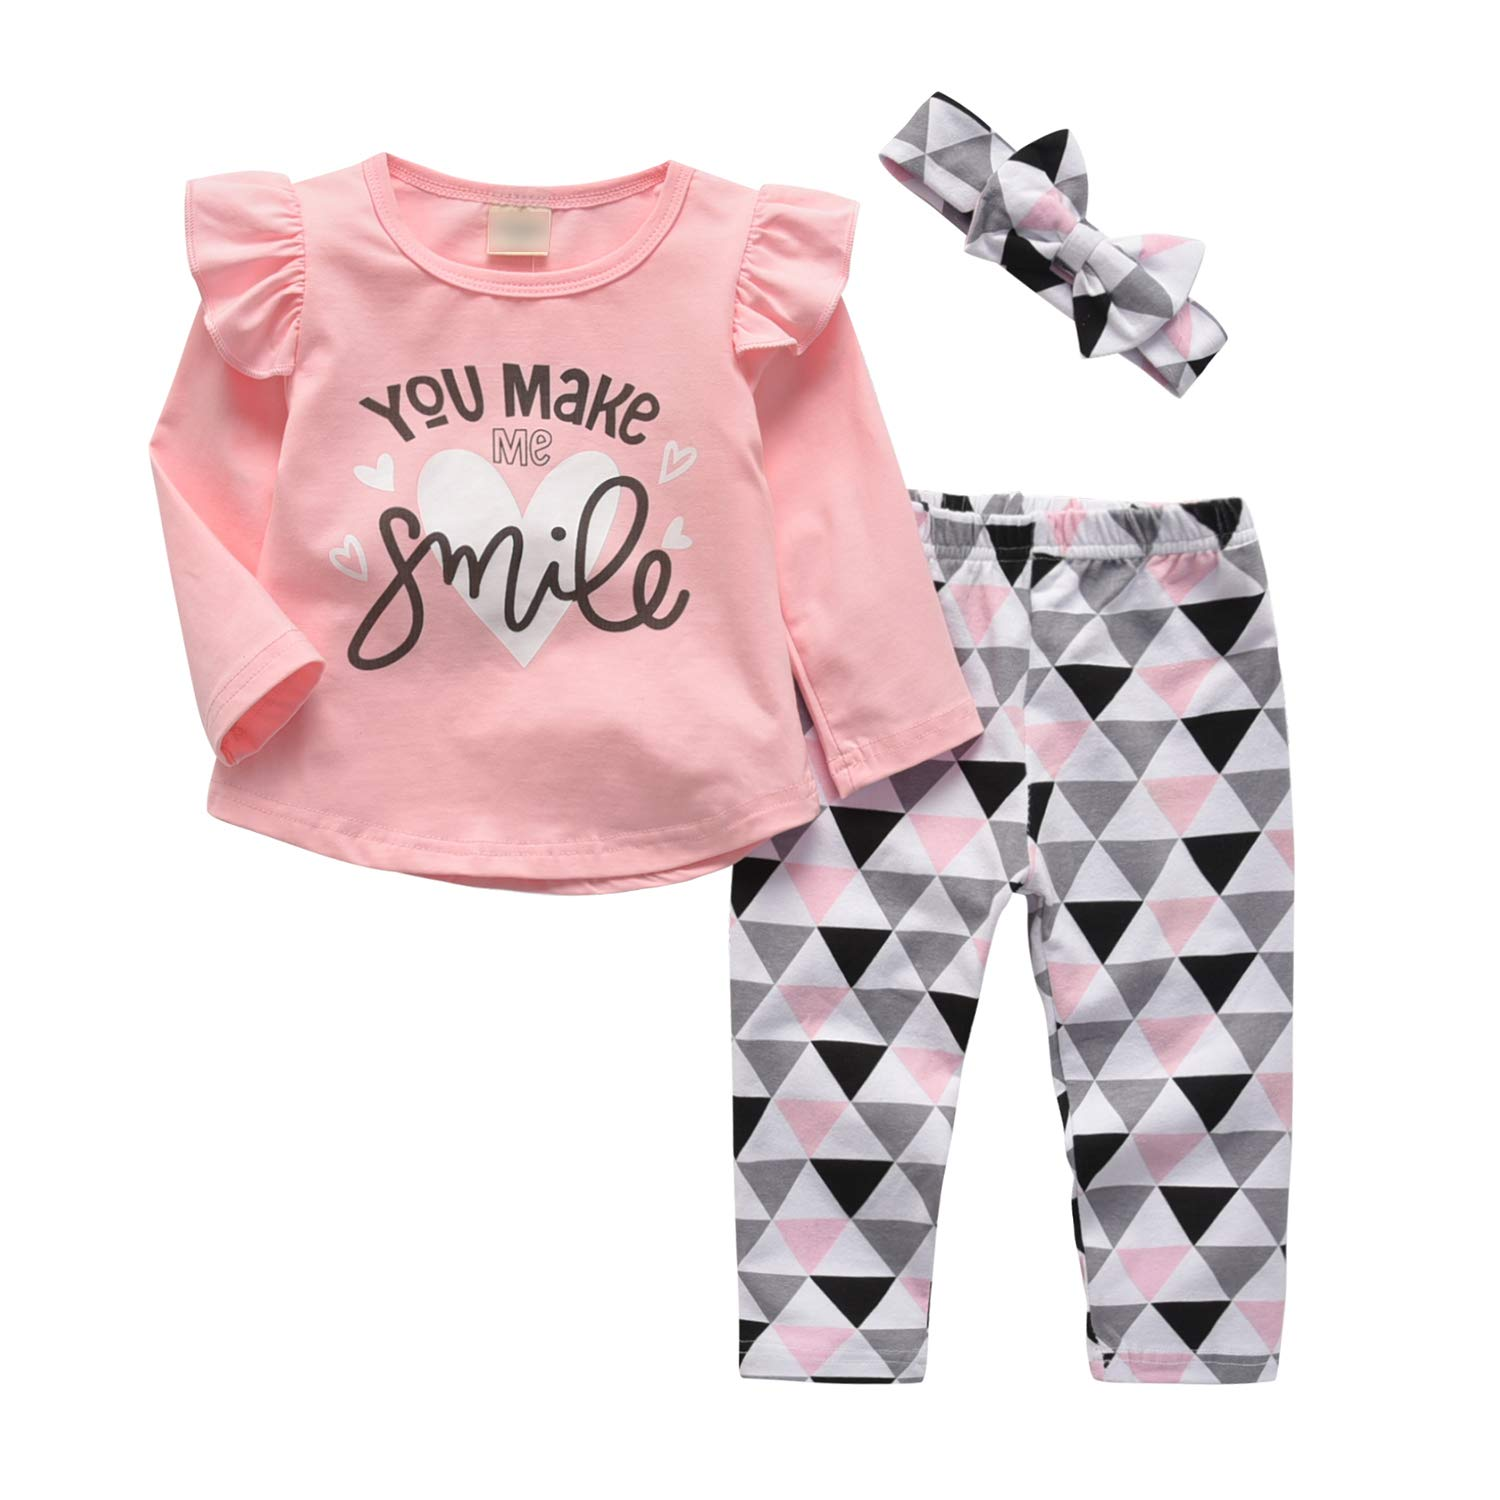 4c28fc165 3 Pcs Baby Girl Clothes Long Sleeve Letter You Make Me Smile Tops Geometric  Pants and Headband Outfit Set